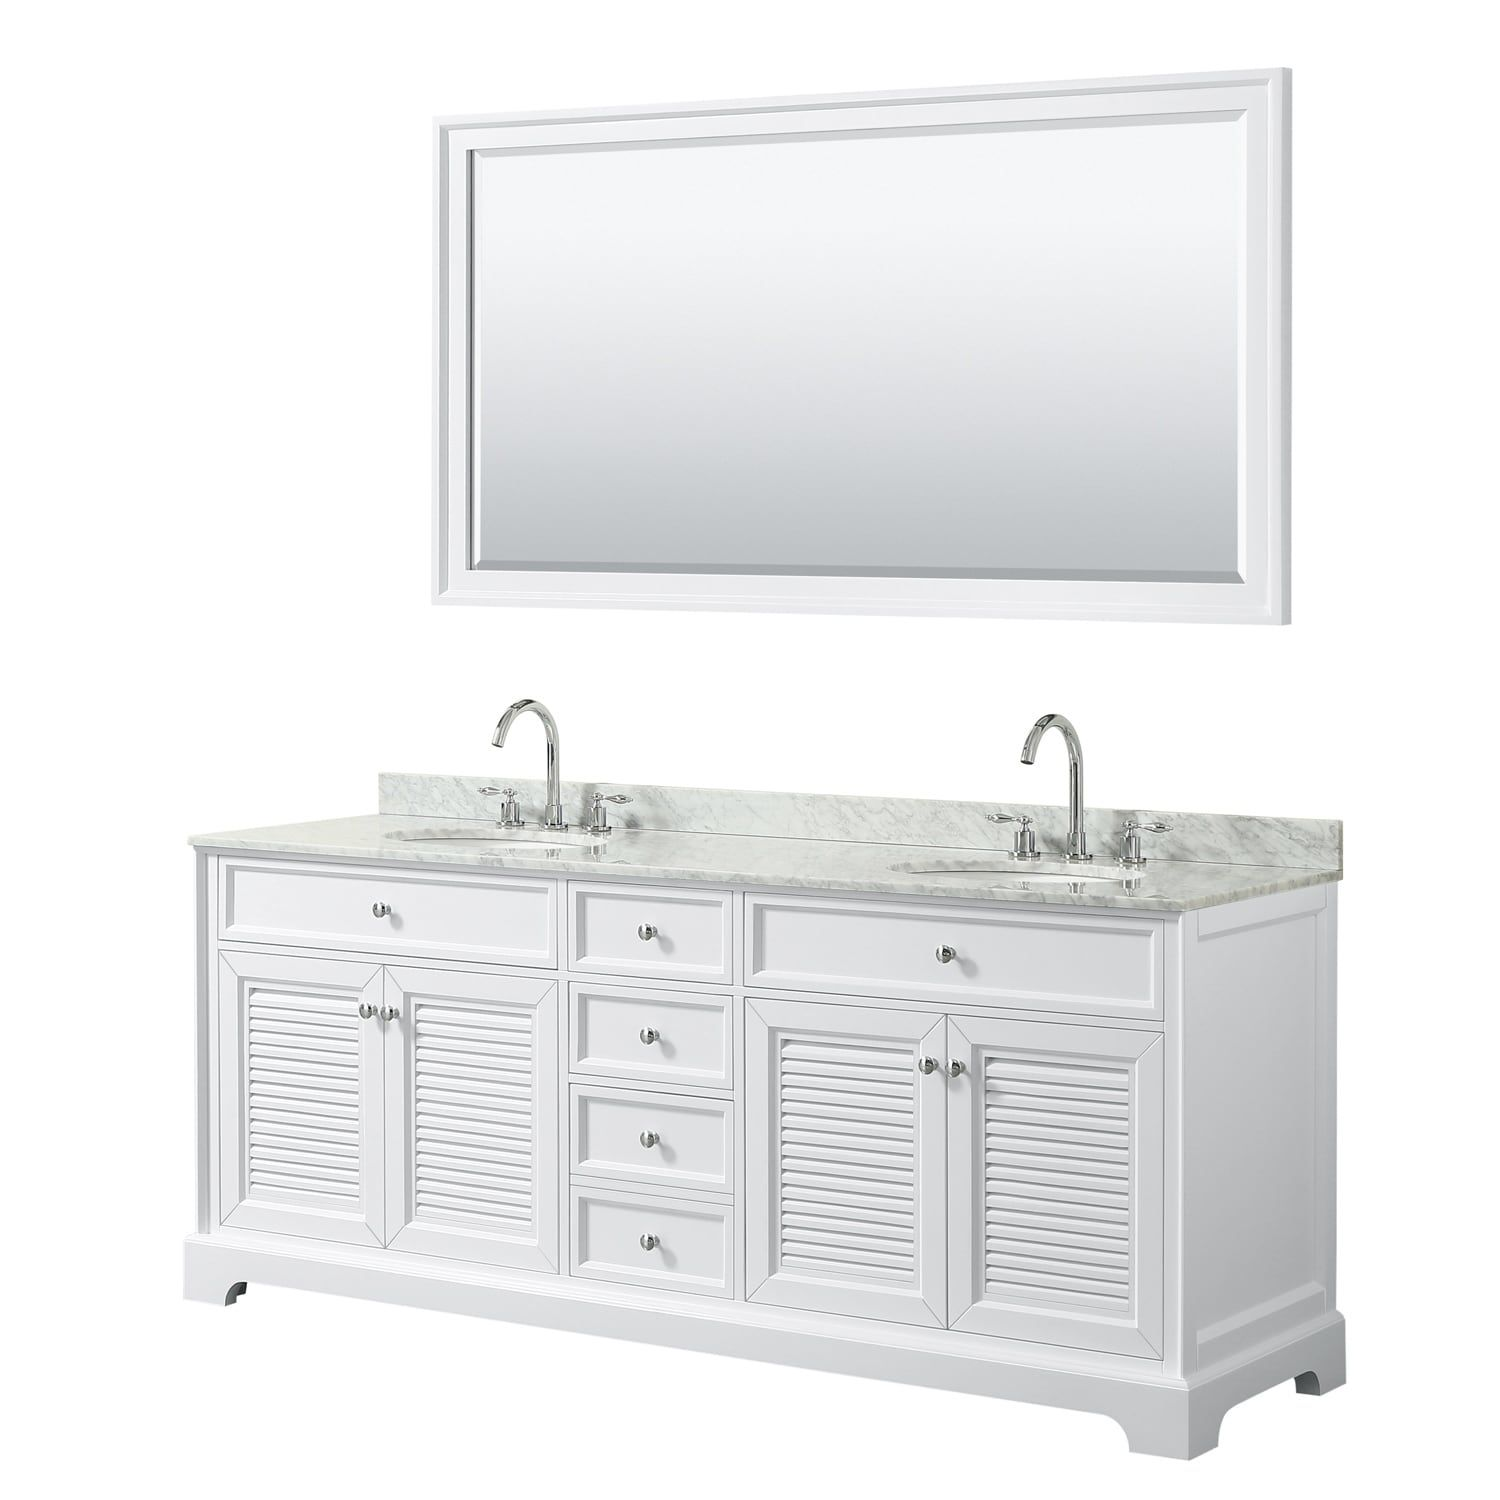 Tamara 80 Inch White Double Vanity Oval Sinks 70 Inch Mirror